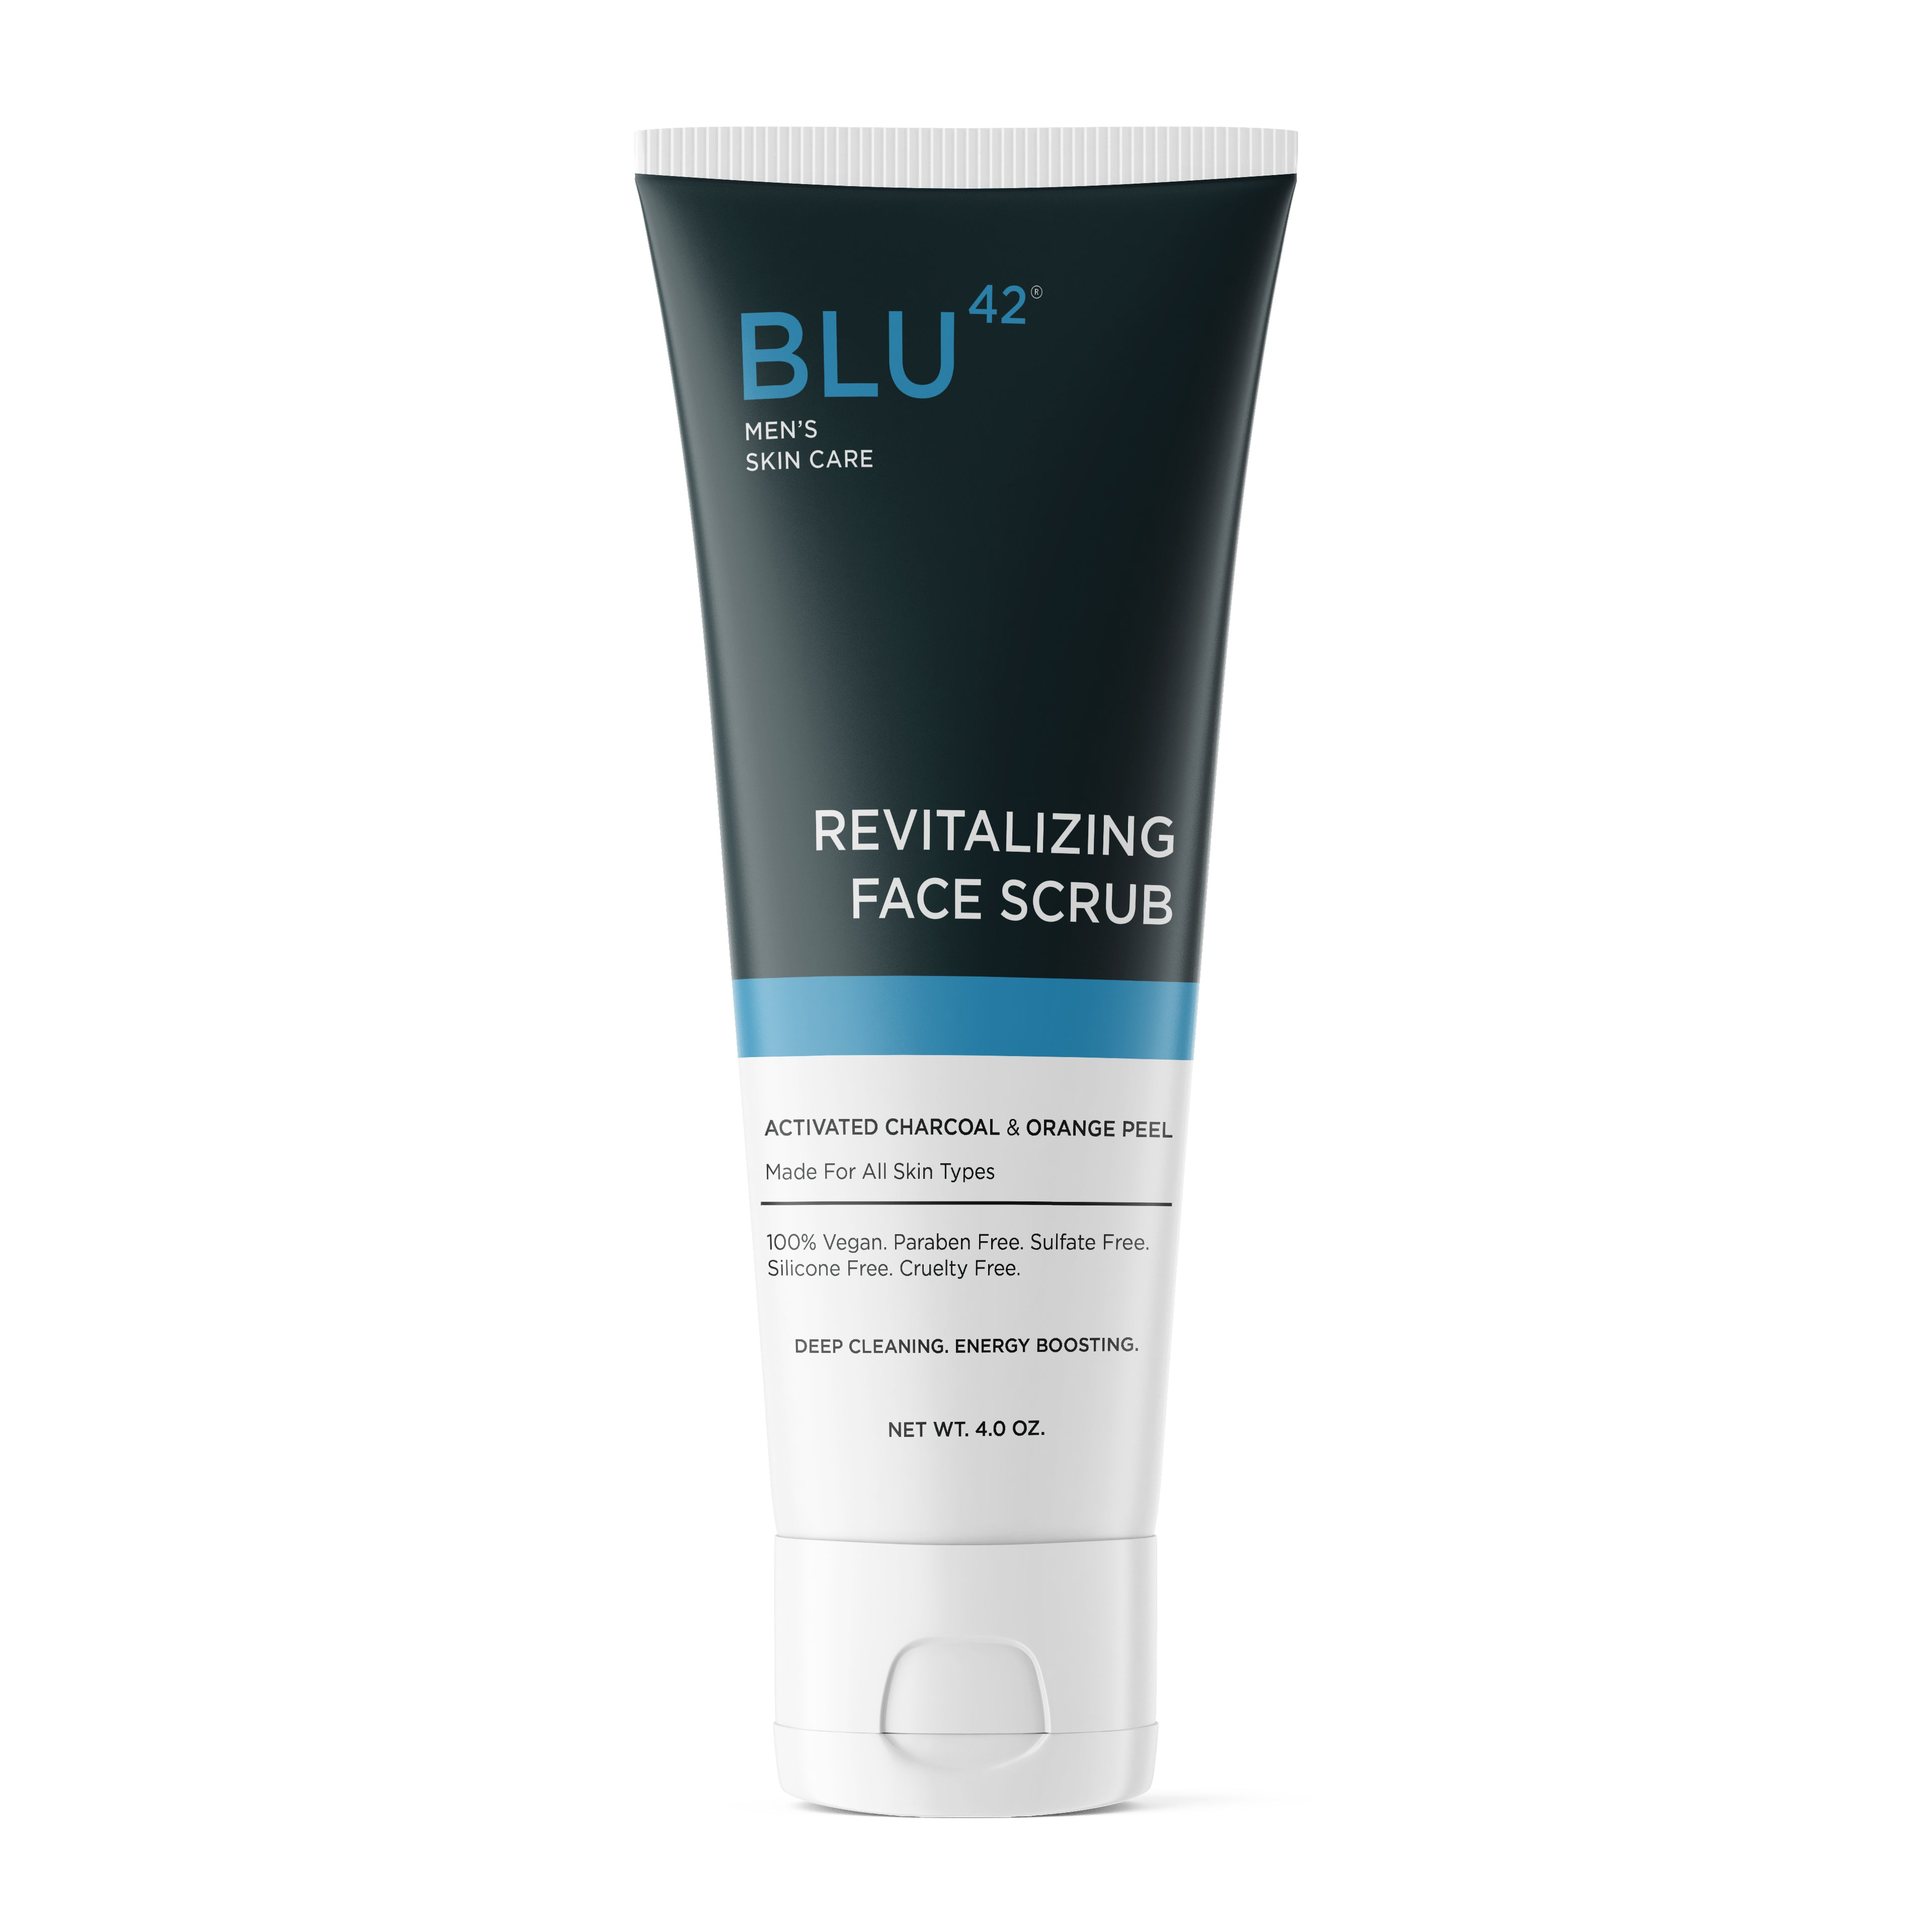 The best men's face wash is our Blu42 Revitalizing Face Scrub filled with Activated Charcoal and Orange Peel and natural clay to exfoliate, draw away toxins, and wake your face up and in one wash,